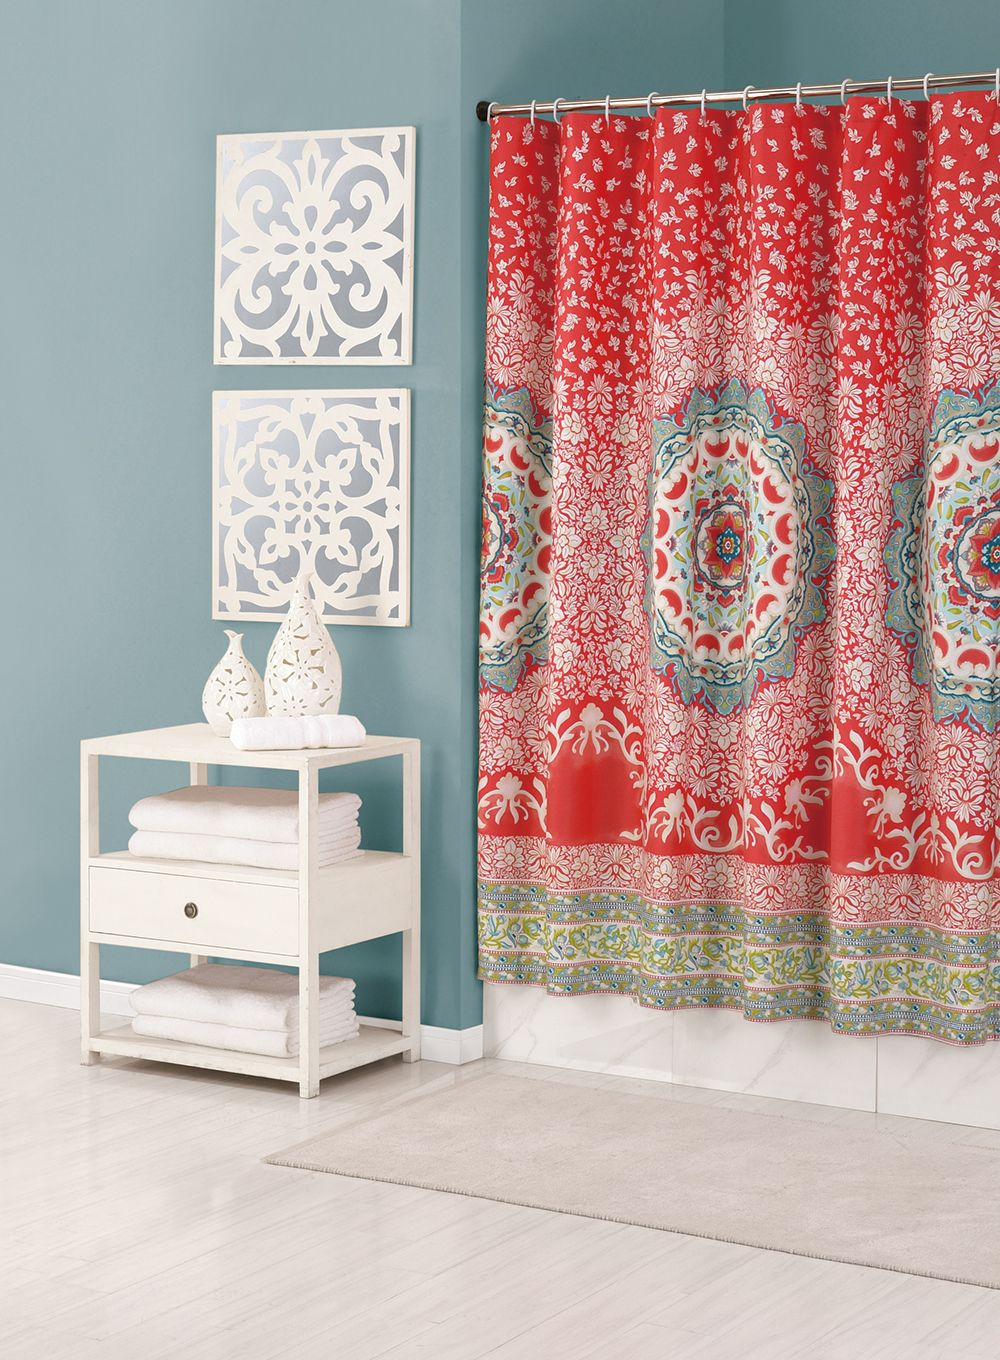 Shower Curtain From The Jessica Simpson Bath Collection Boho